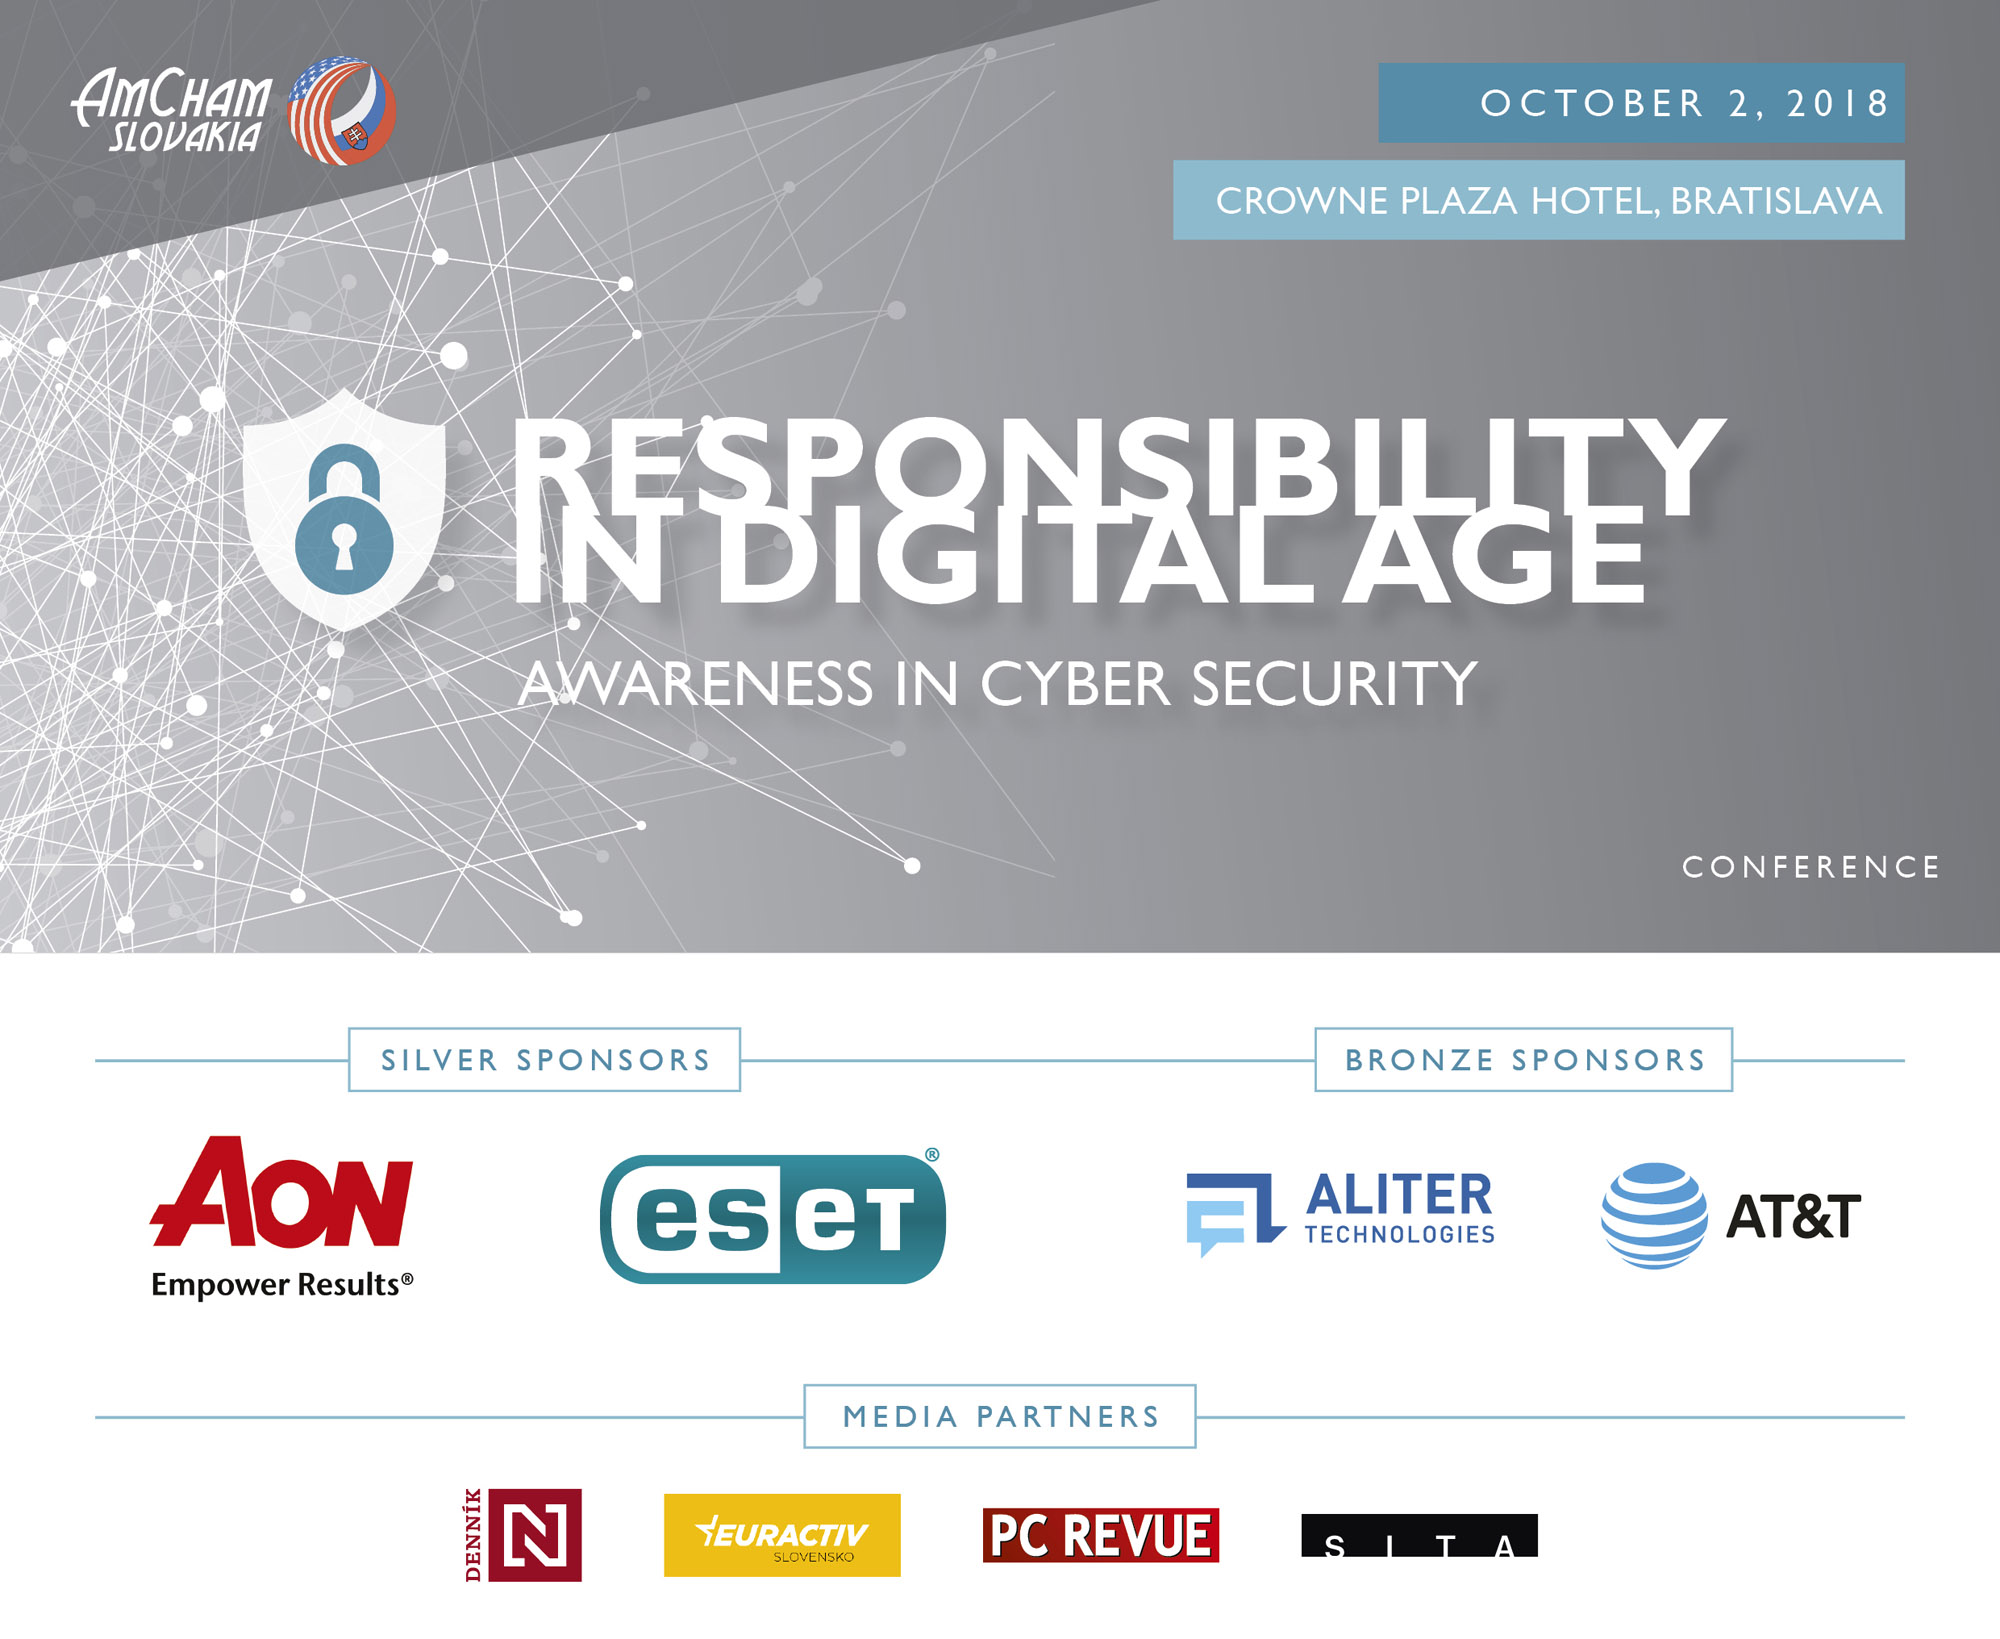 AmCham Slovakia Cyber Security Conference 2018